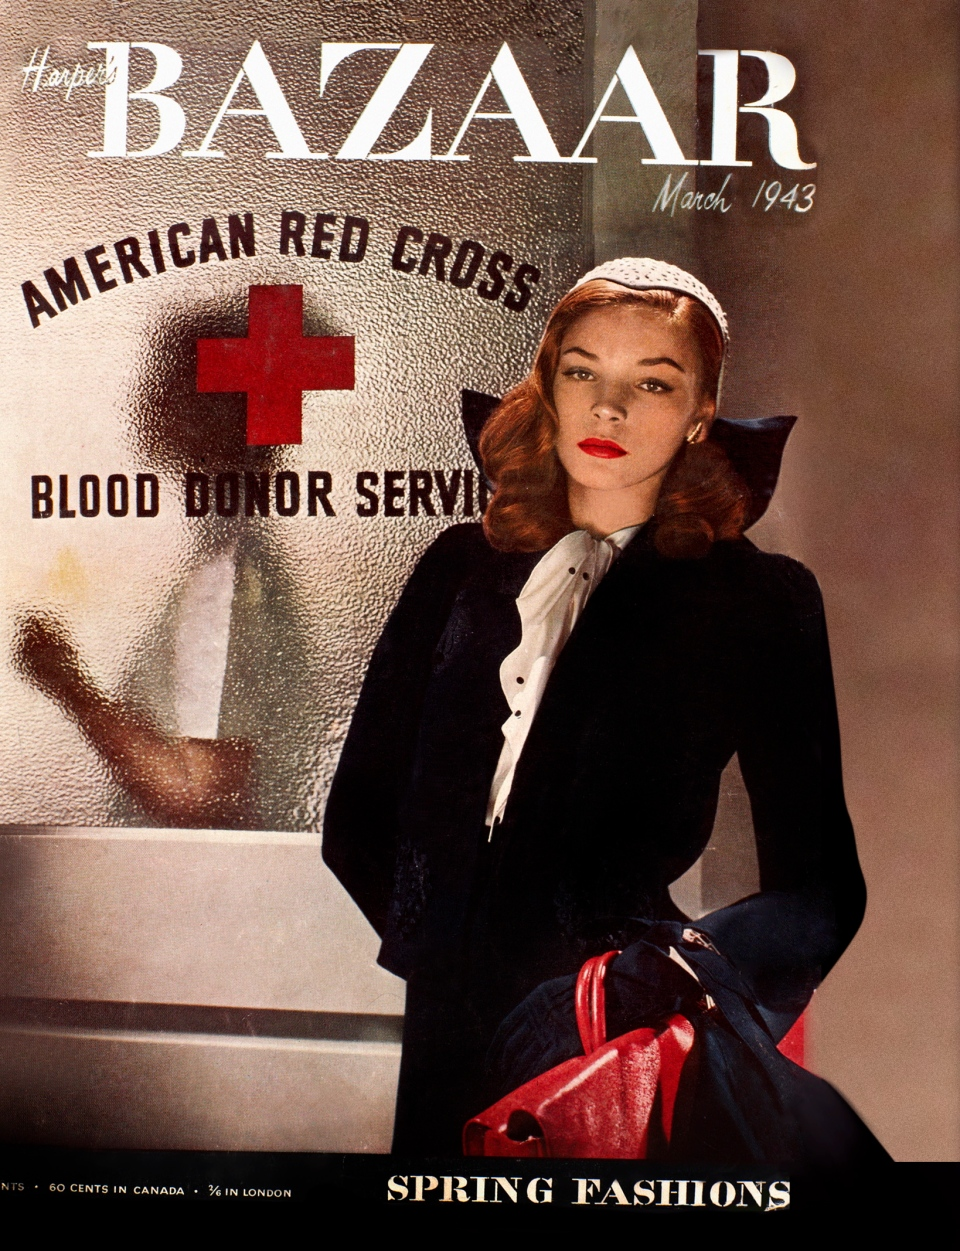 This magazine cover image released by Hearst shows actress-model Lauren Bacall on the cover of the March 1943 issue of 'Harper's Bazaar.' (Provided / Hearst)